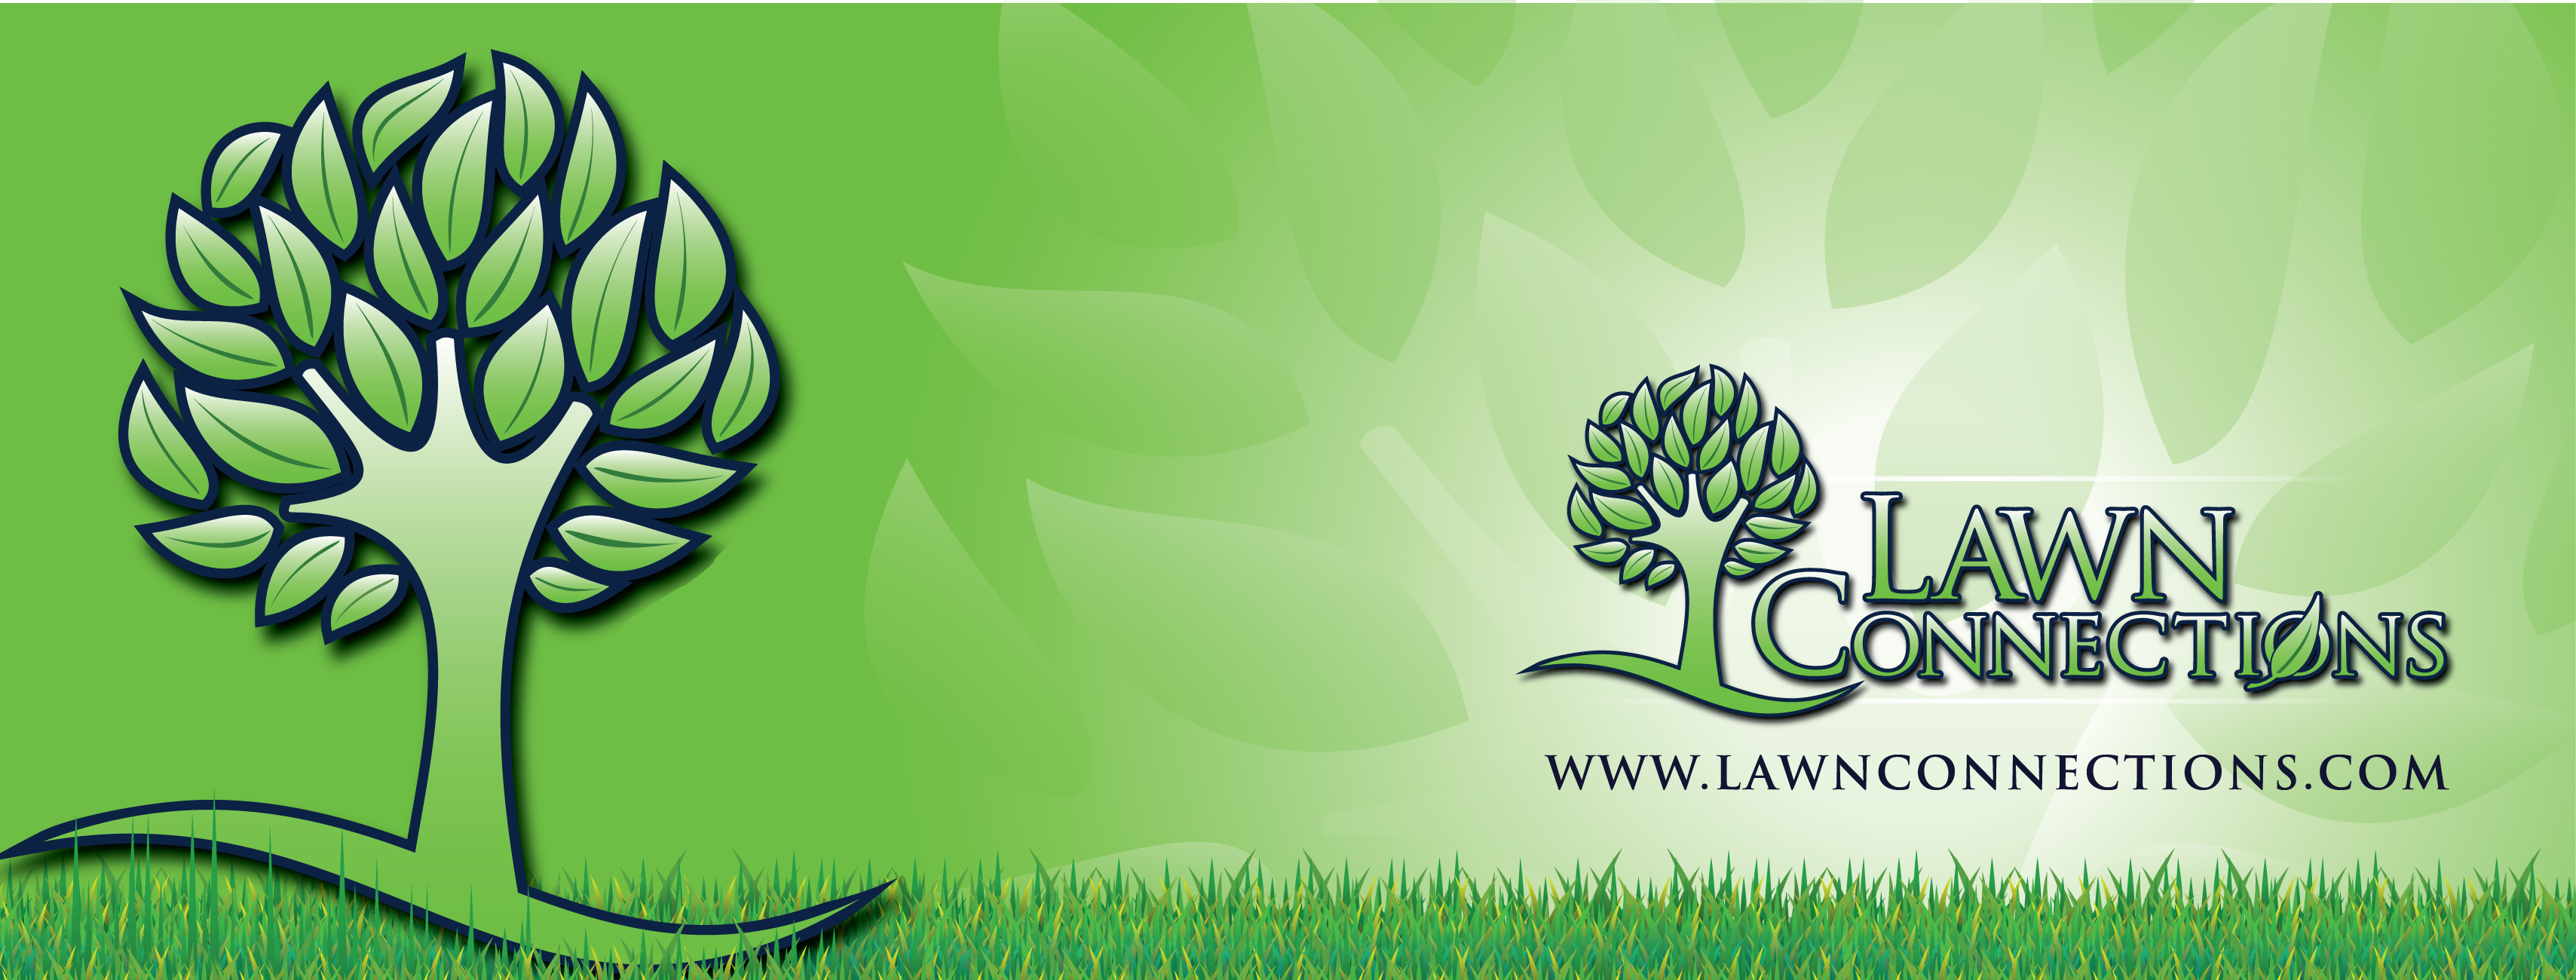 About Us Lawn Connections Services Dallas Fort Worth